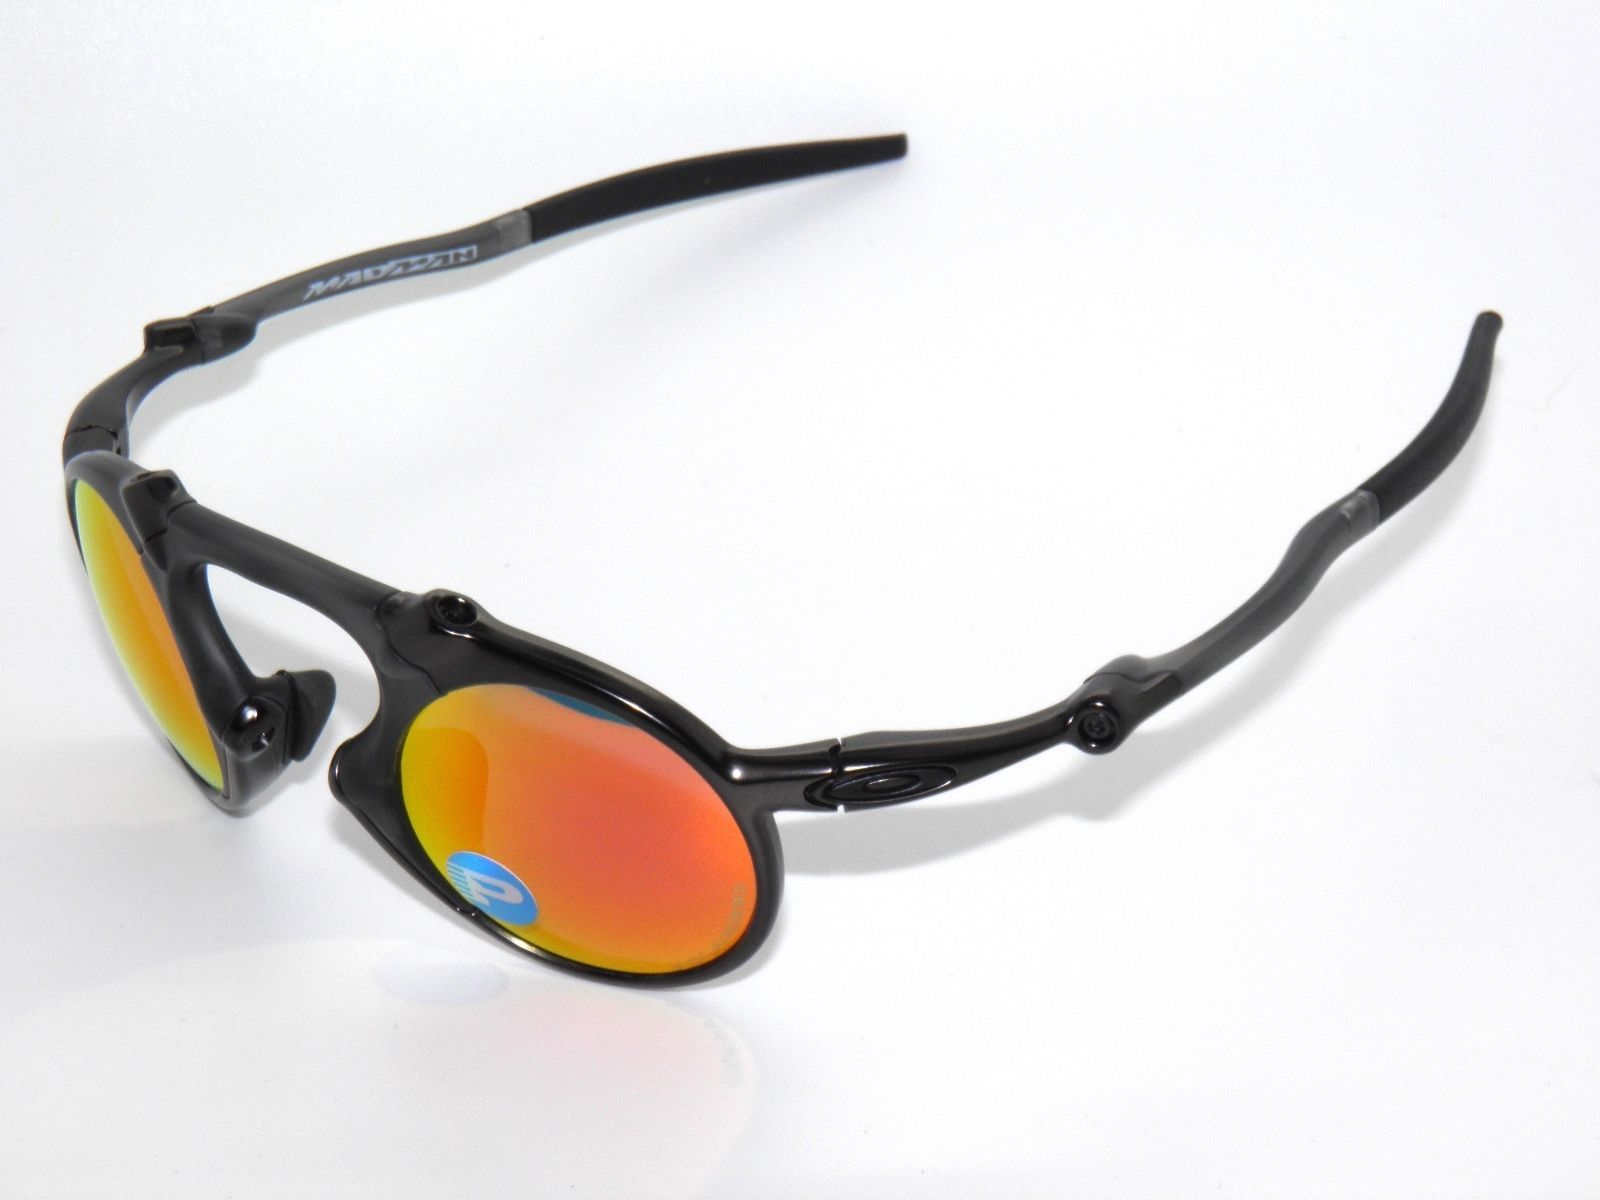 07e4c8c3084 ... switzerland clearance oakley madman 6019 04 dark carbon ruby iridium  polarized sunglasses 59f74 7334a